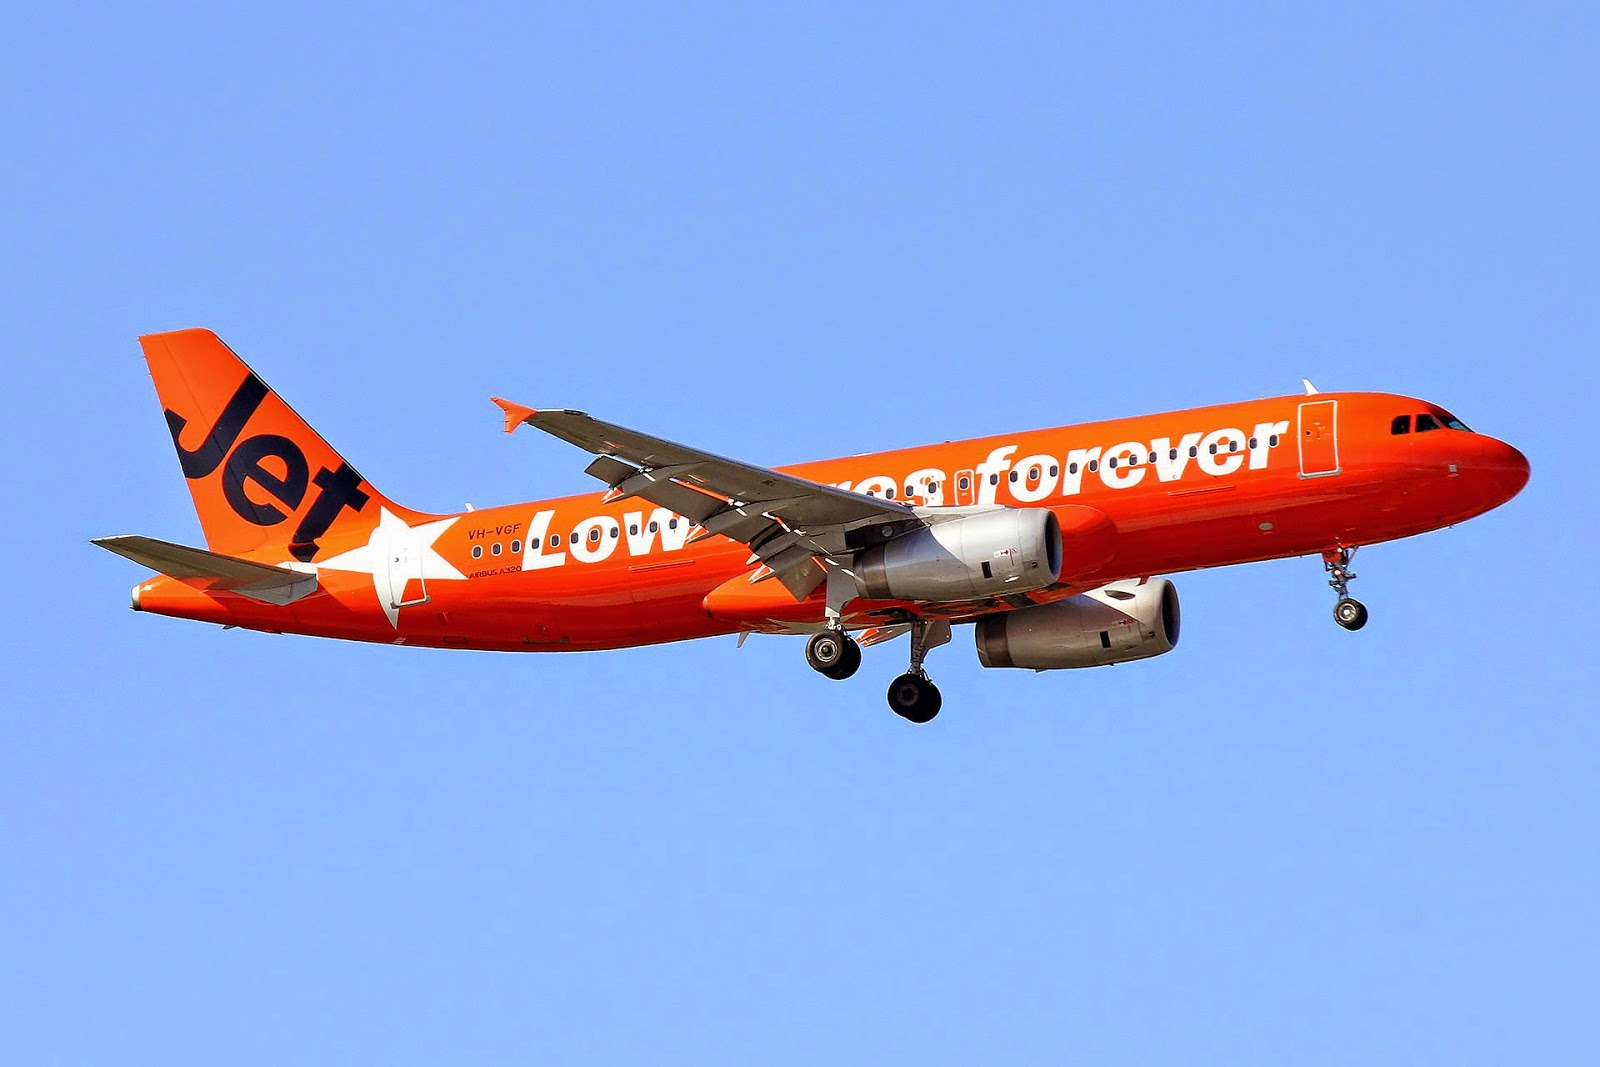 JetStar Asia Perth to Singapore flights, book your tickets ...